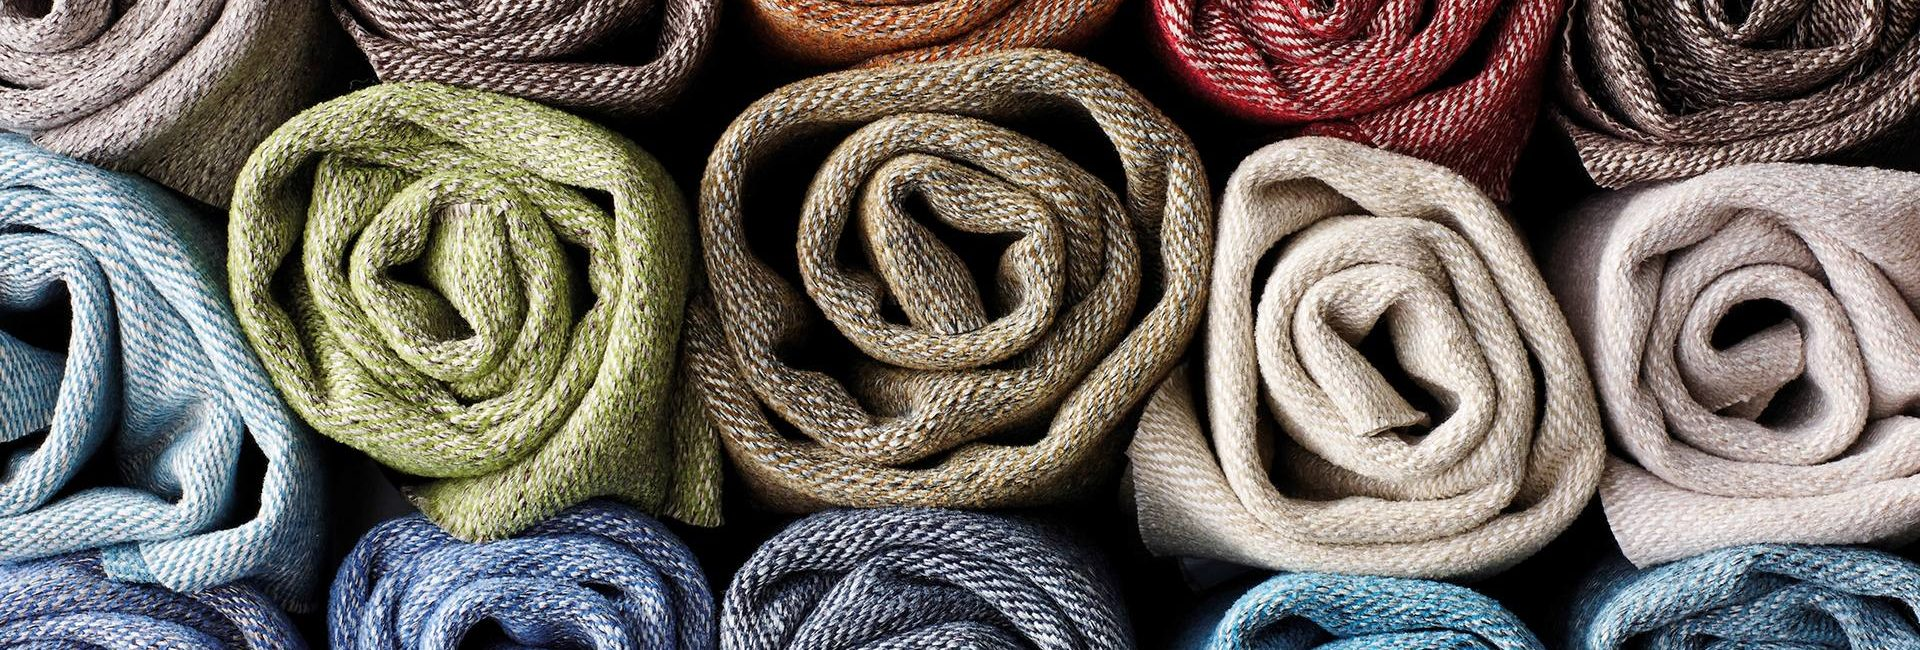 Photo of rolled up fabrics by Osborne and Little from Fabric Gallery and Interiors